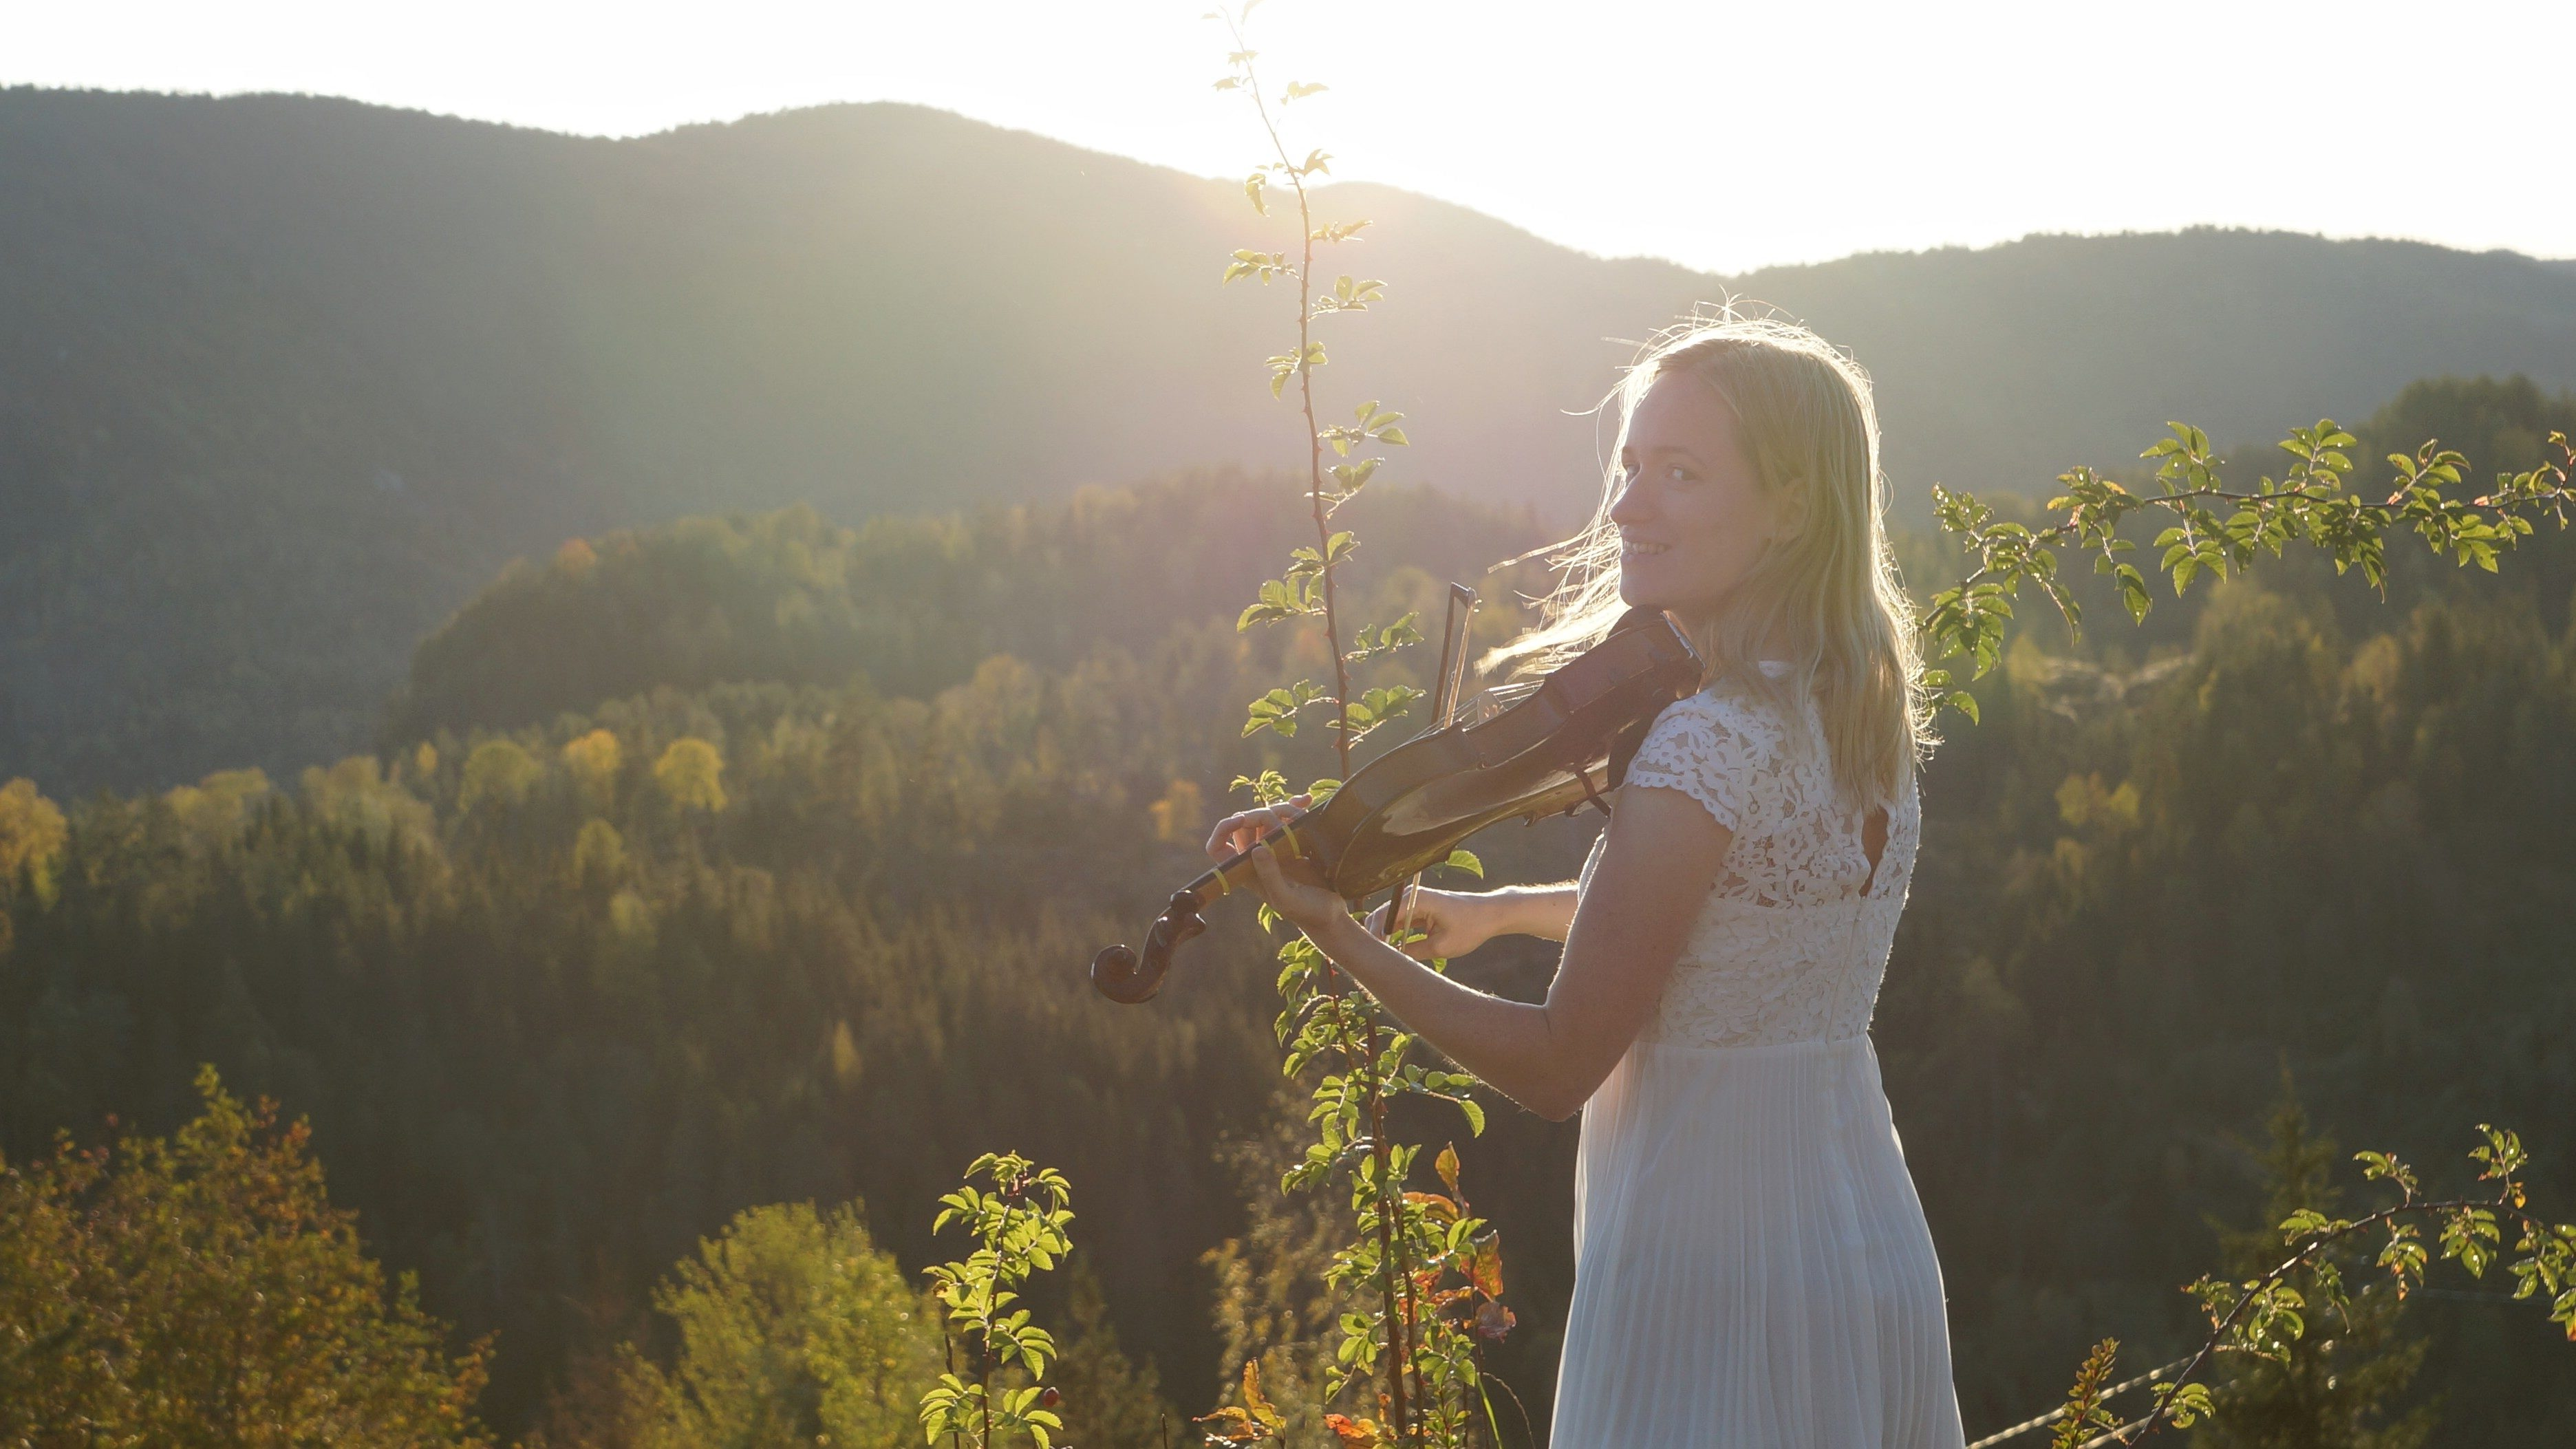 violin girl in nature – learn the violin on your own by yourself